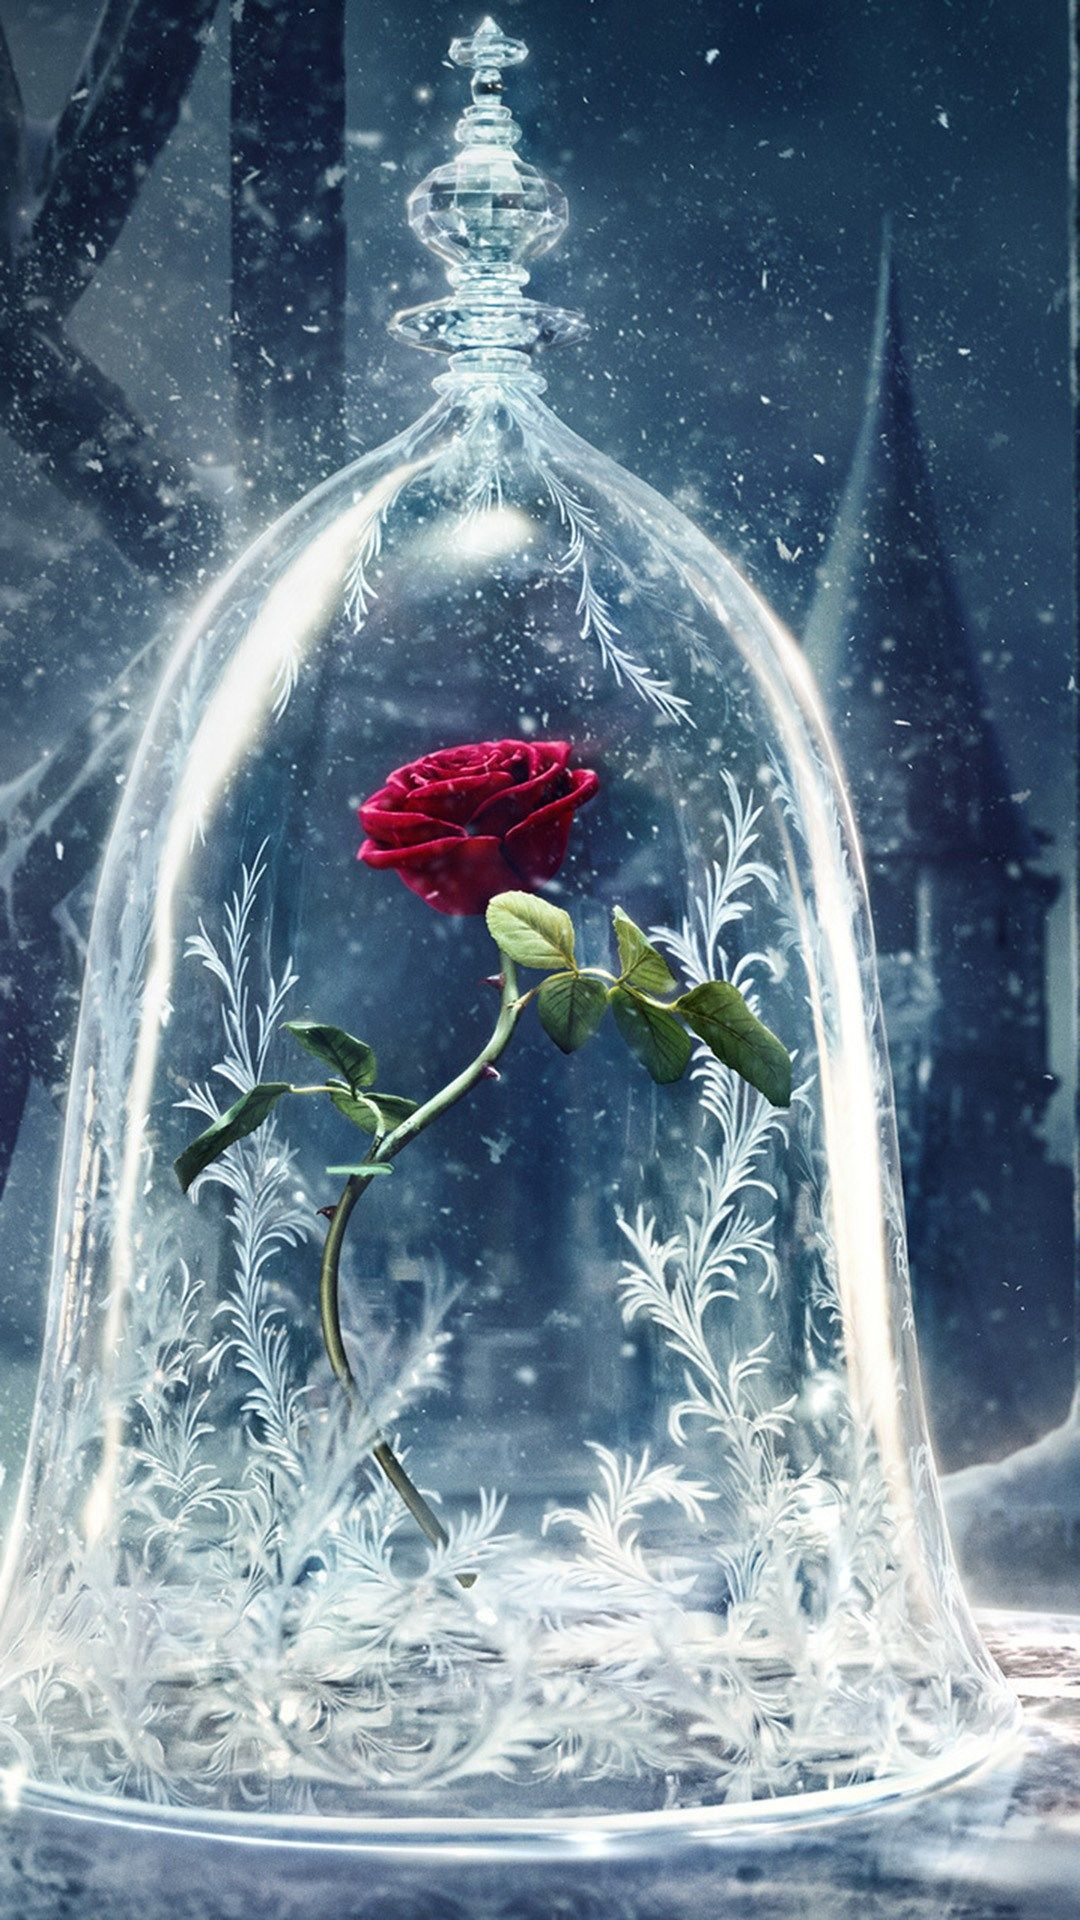 Beauty And The Beast Iphone Wallpapers Top Free Beauty And The